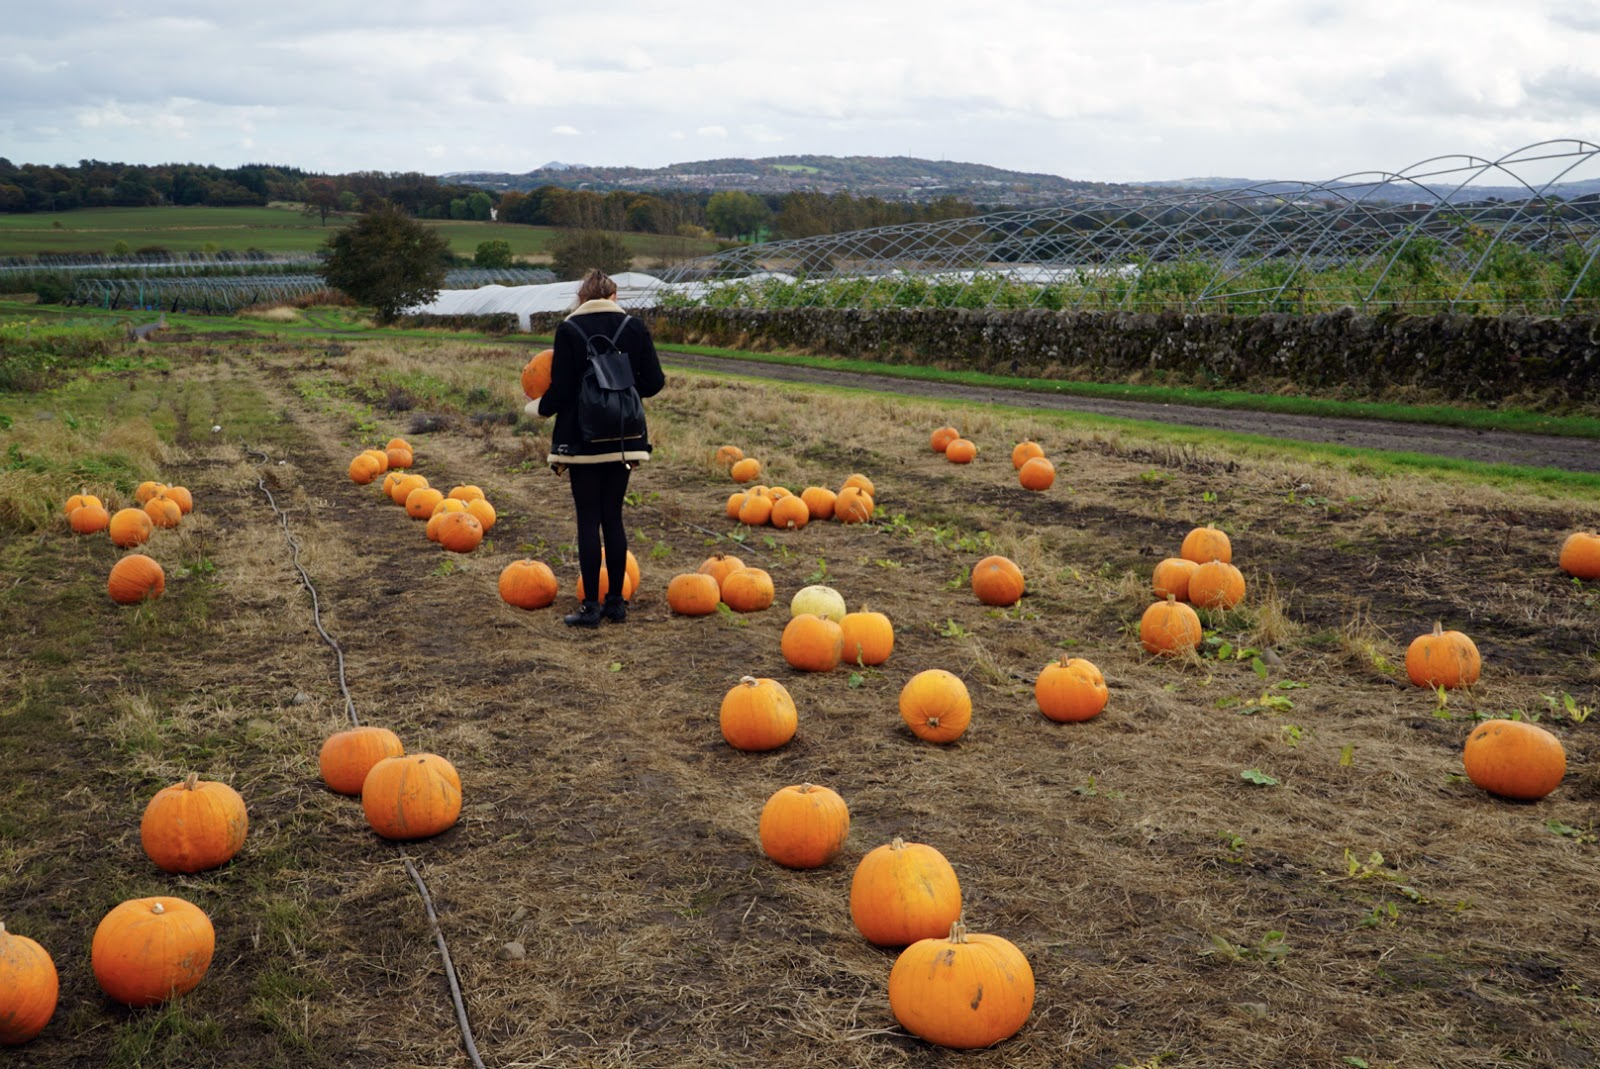 Pumpkin Picking at Craigies Farm, Edinburgh, Scotland // Autumn // Lauren Rose Fashion Lifestyle Blogger